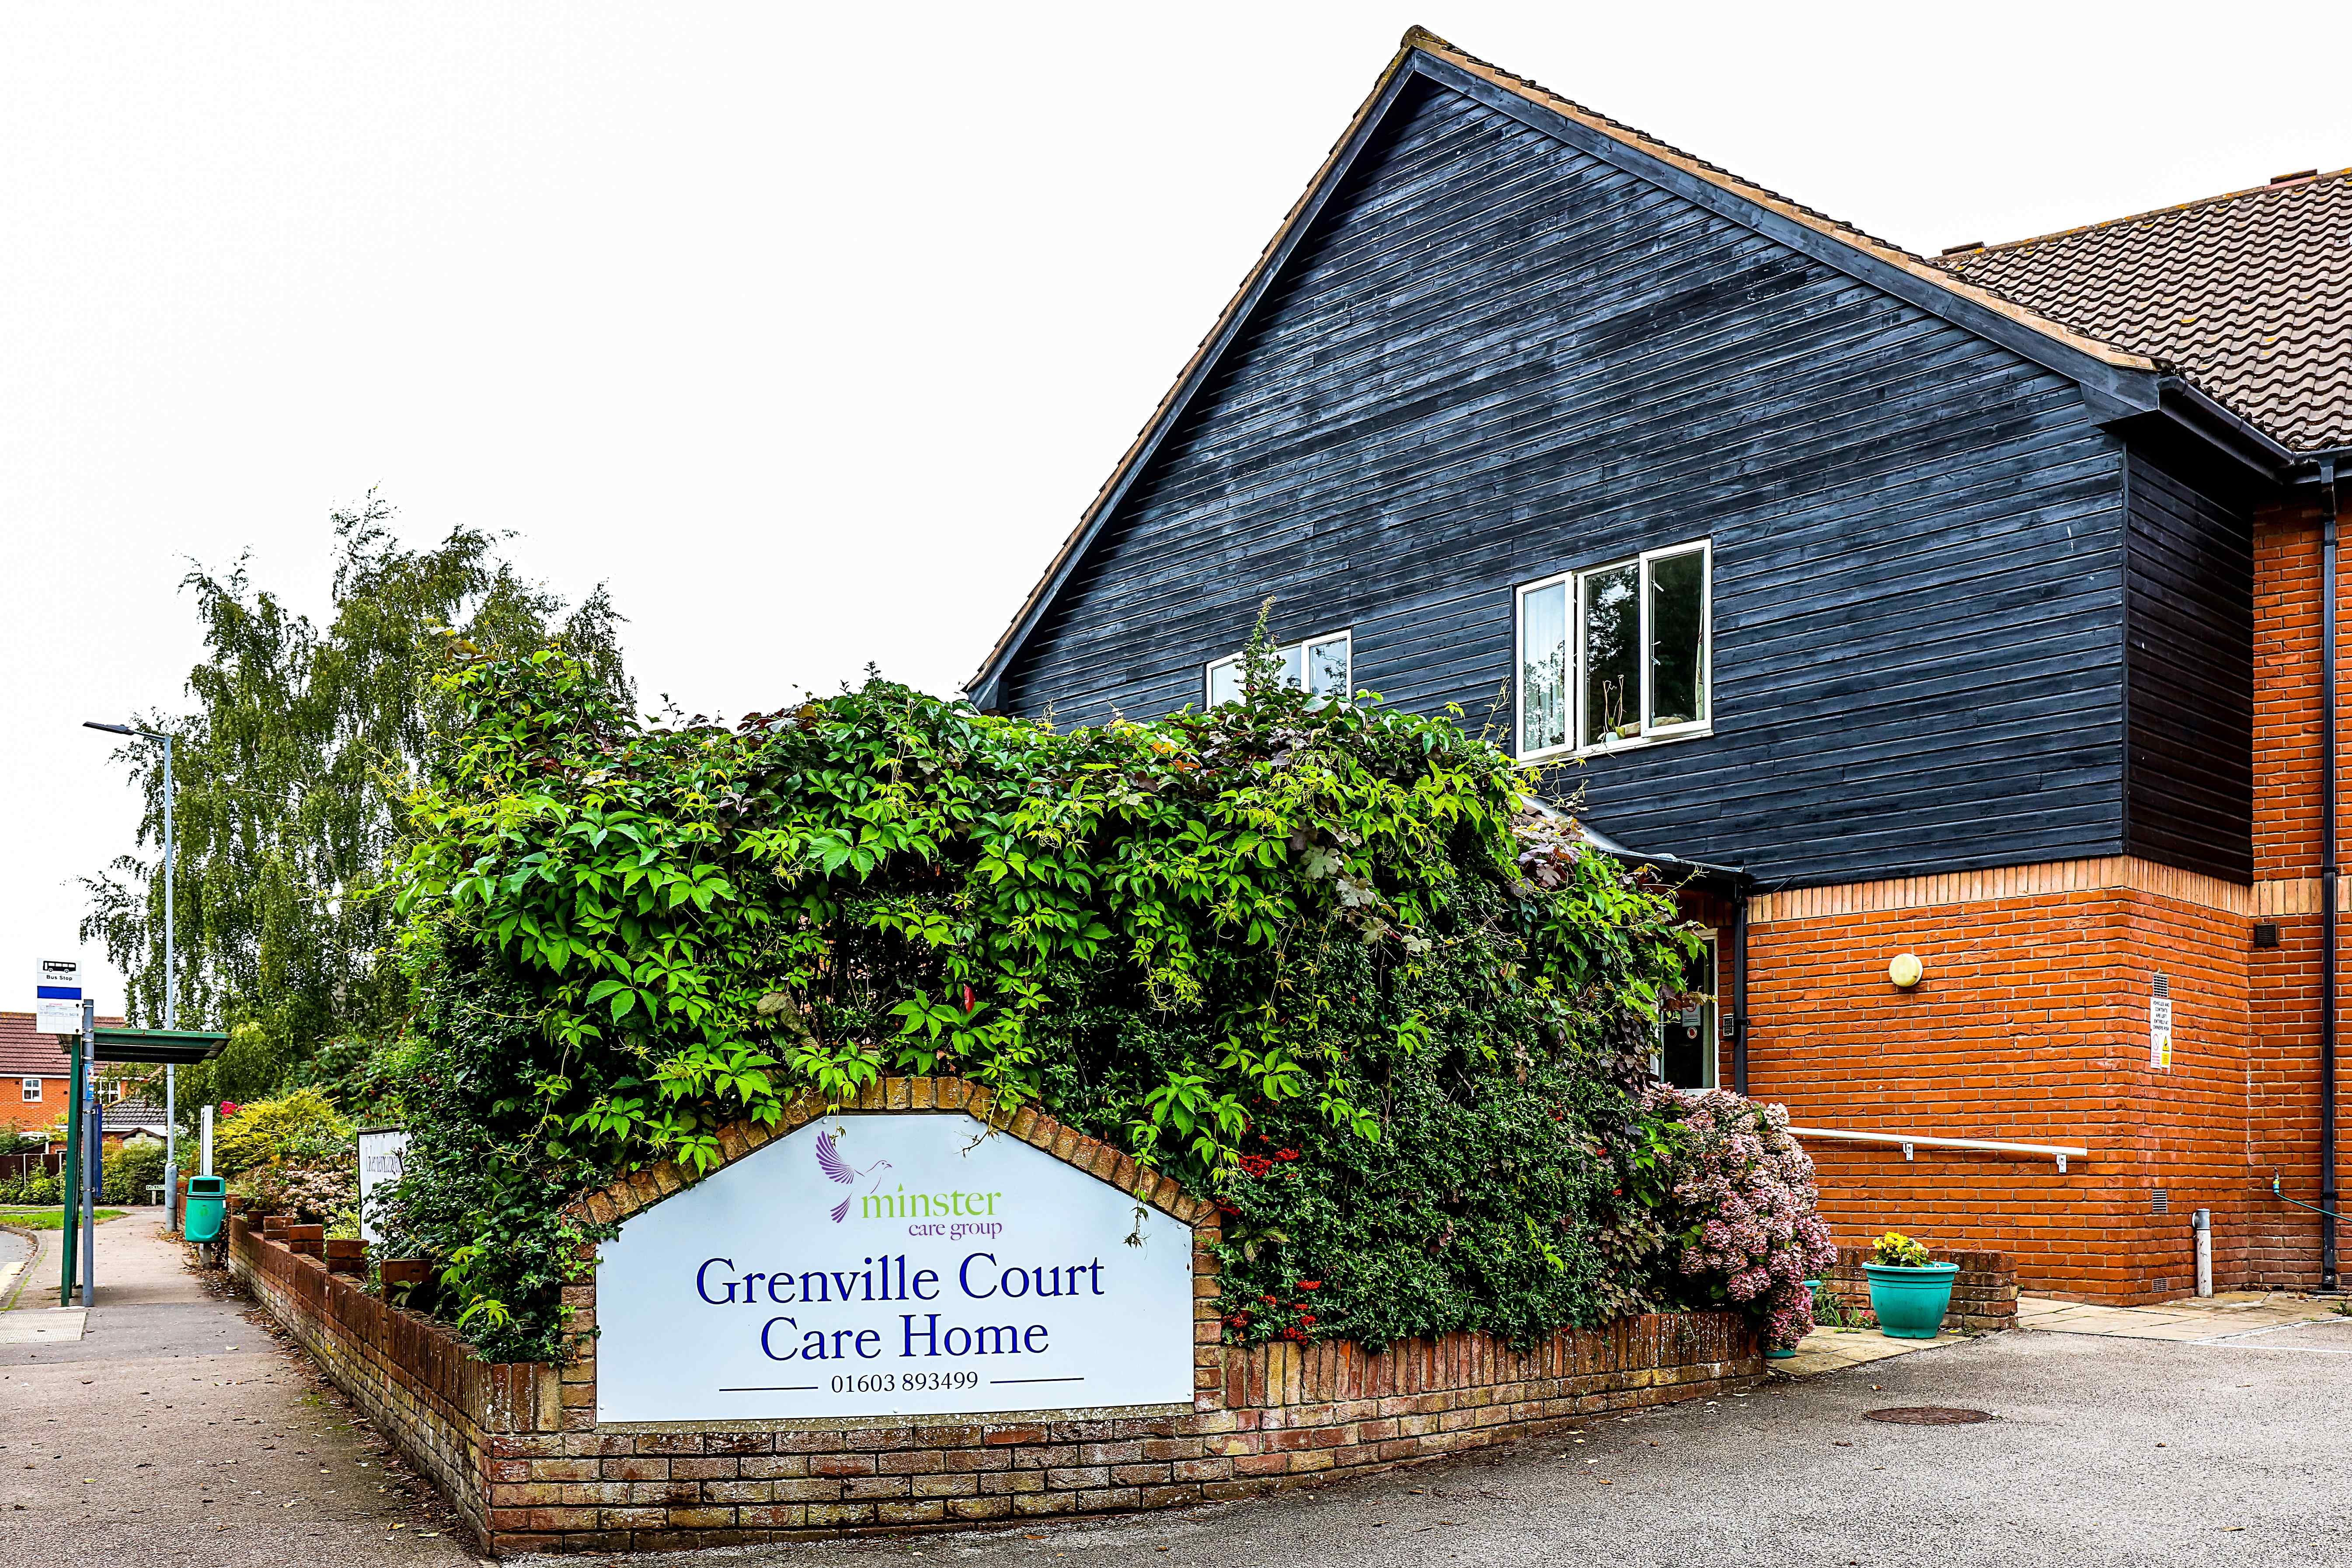 Grenville Court